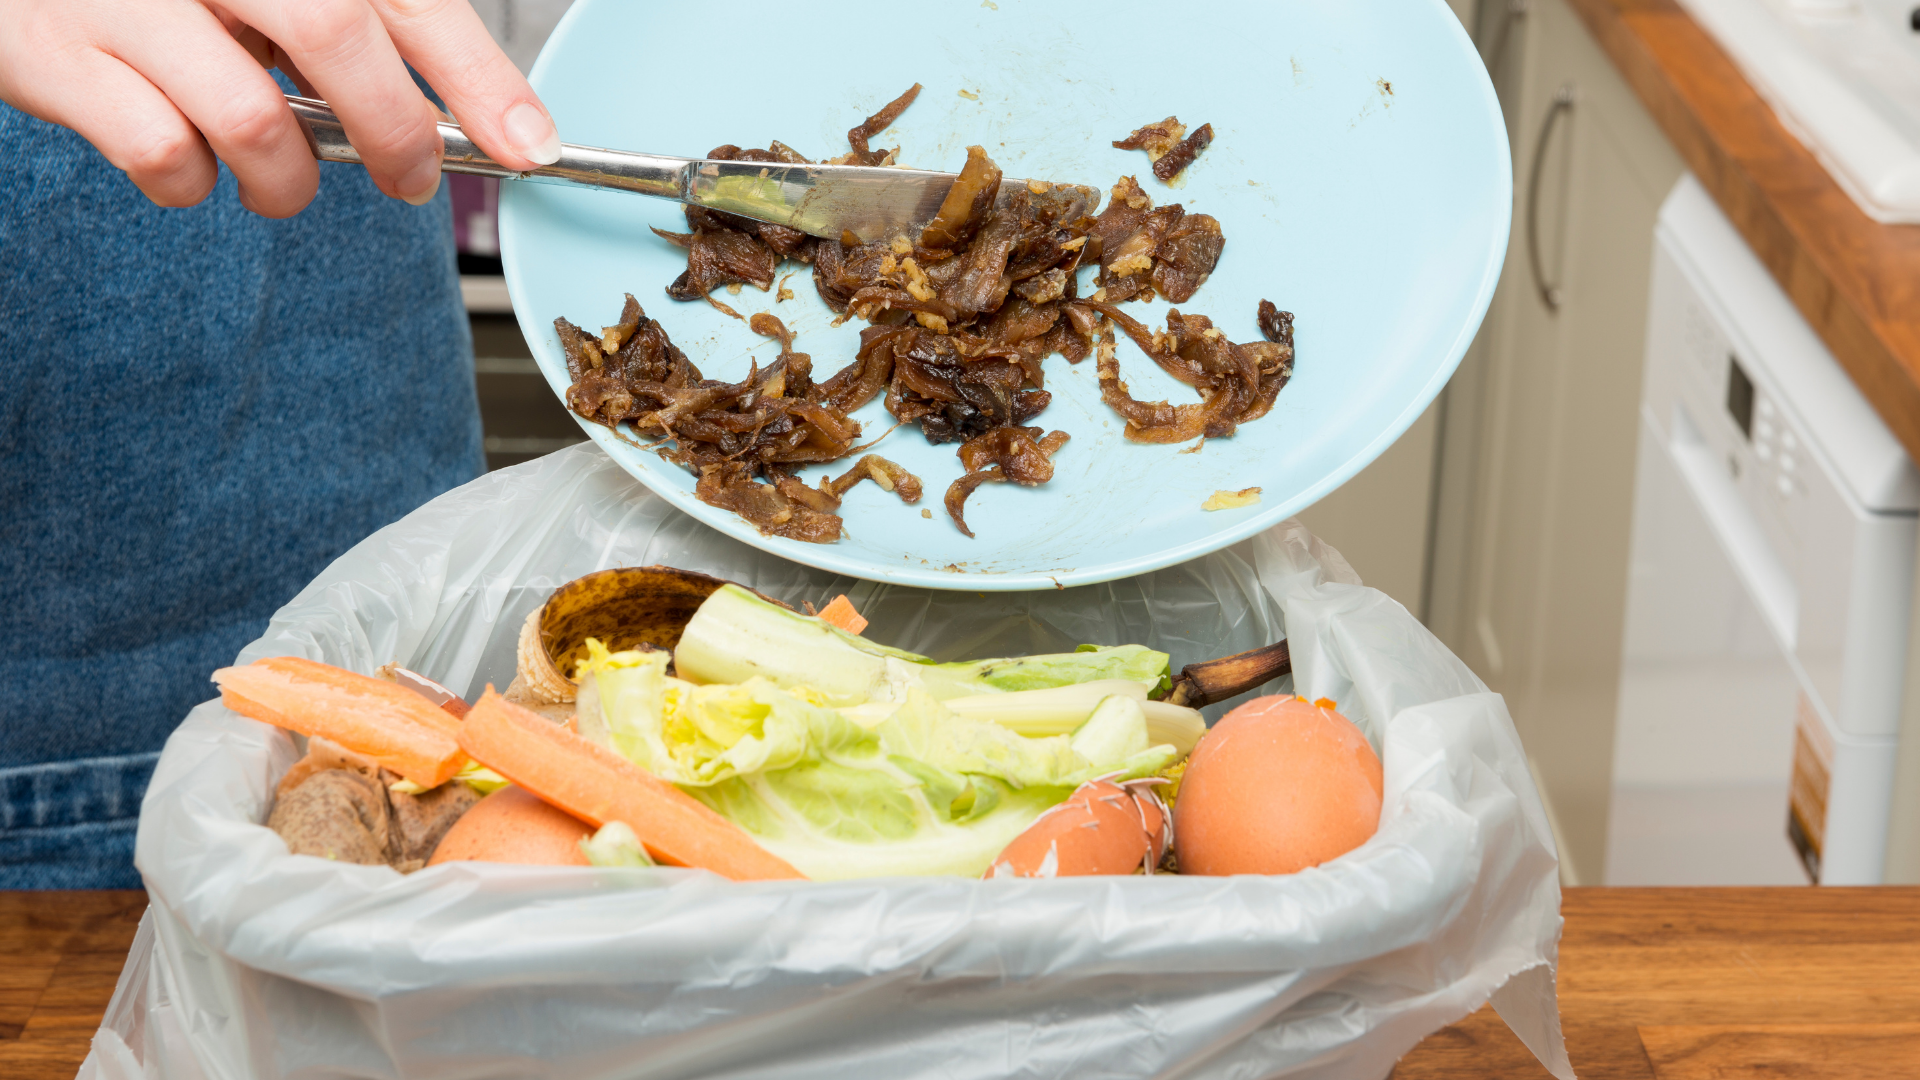 Food scraps being scraped into an organics bin with other foods